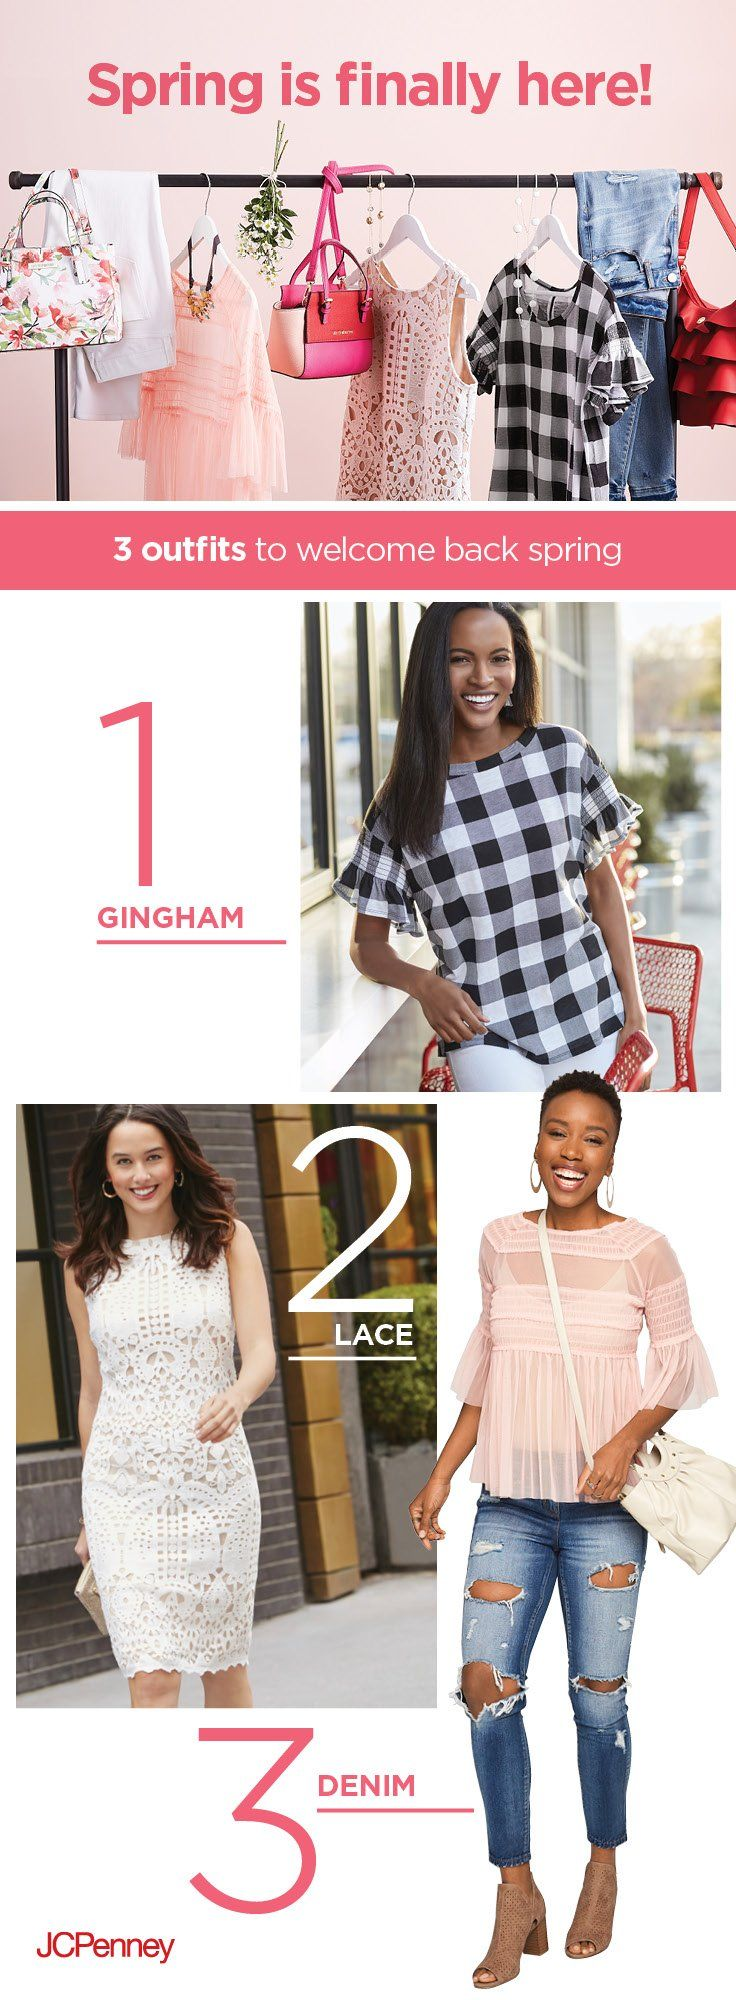 It's officially the first day of Spring! That means it's time to swap out your winter wardrobe with bright colors, girly tops, flowy dresses and fresh patterns like floral, gingham or stripes. Find all the spring outfit inspo you need right here and give your spring look a major refresh. From casual day outfits to romantic evening looks—JCPenney has must-have spring styles in made-to-please fits for every girl.